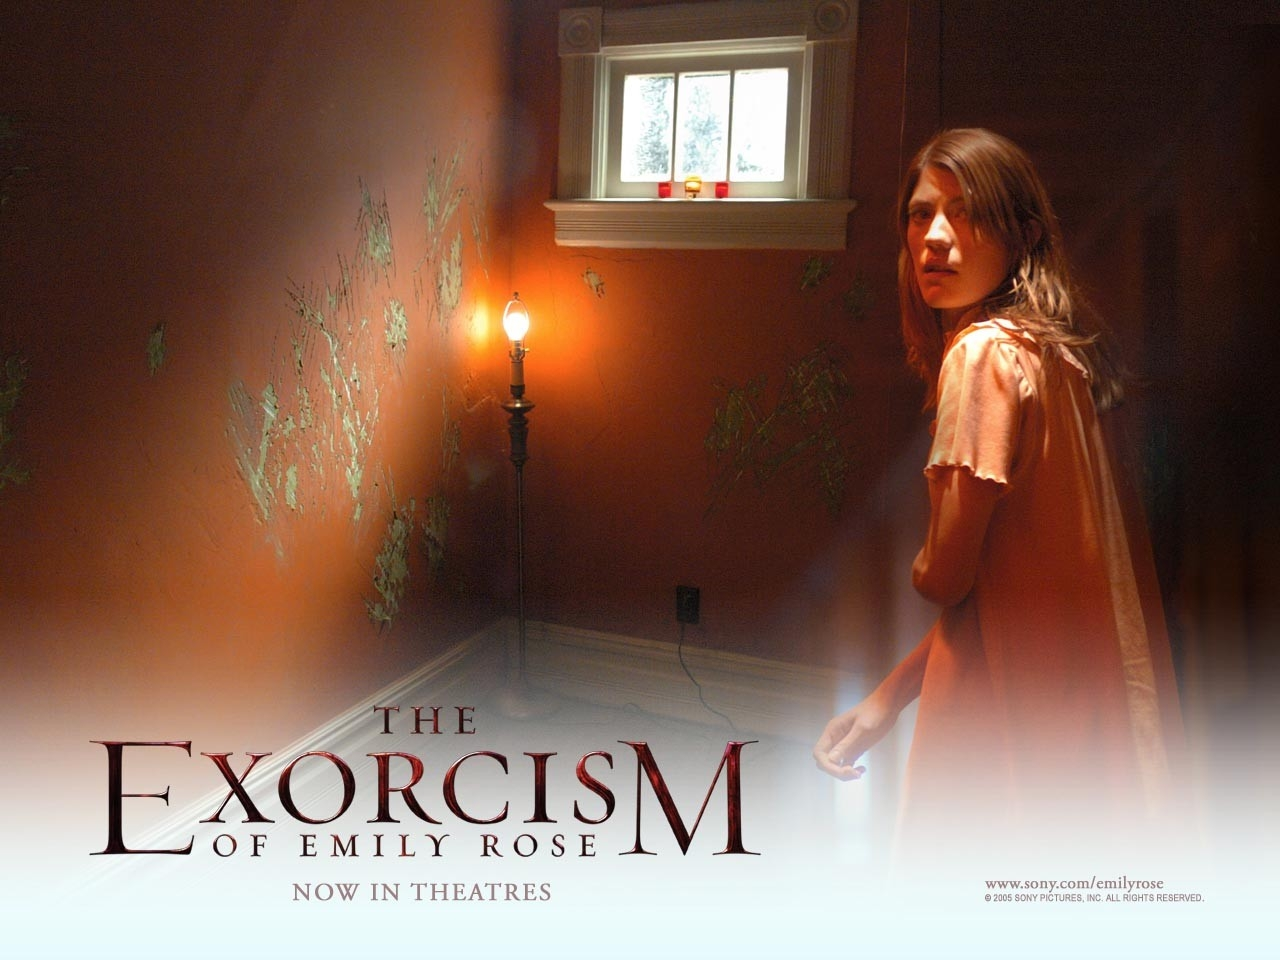 Wallpaper del film The Exorcism of Emily Rose